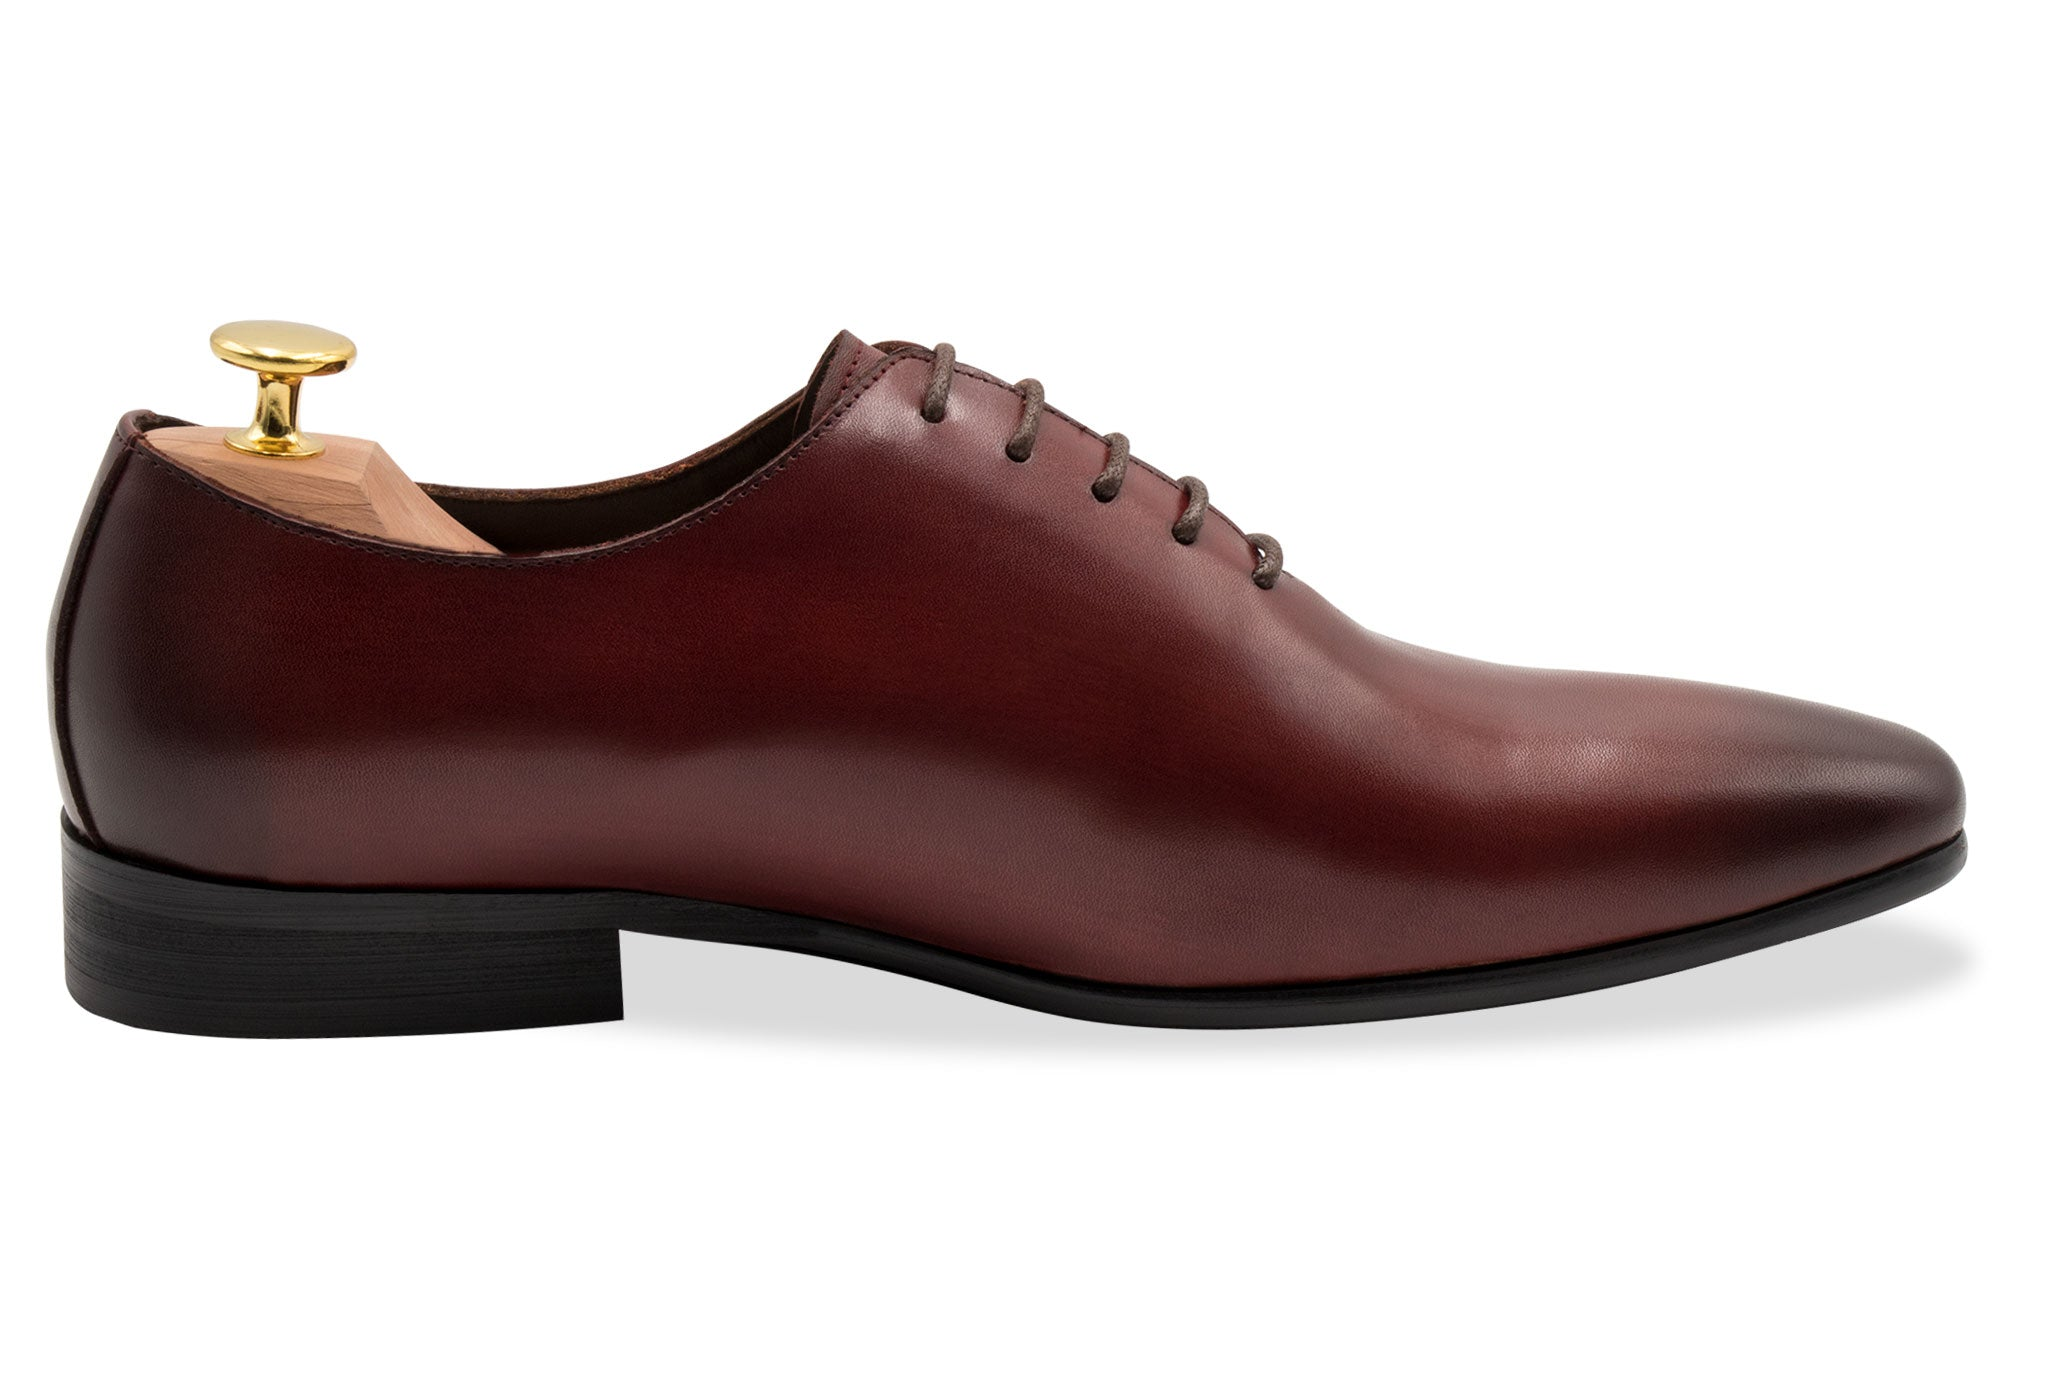 Carlota Wholecut Oxblood Oxford